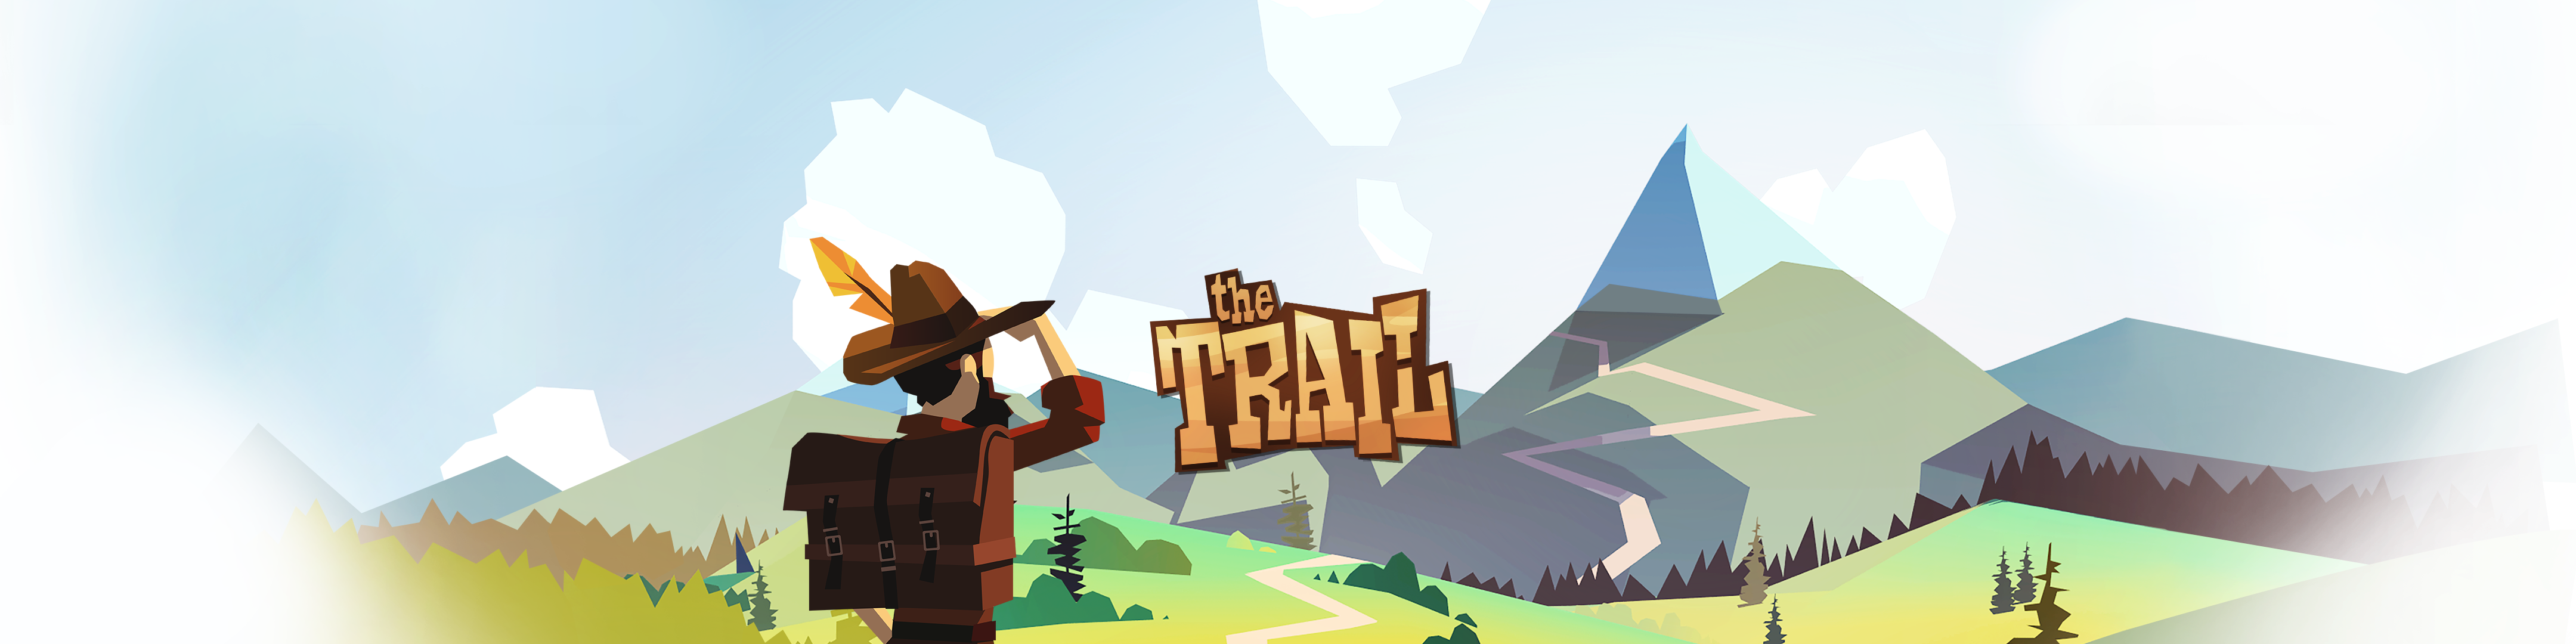 The Trail - Revenue & Download estimates - Apple App Store - US